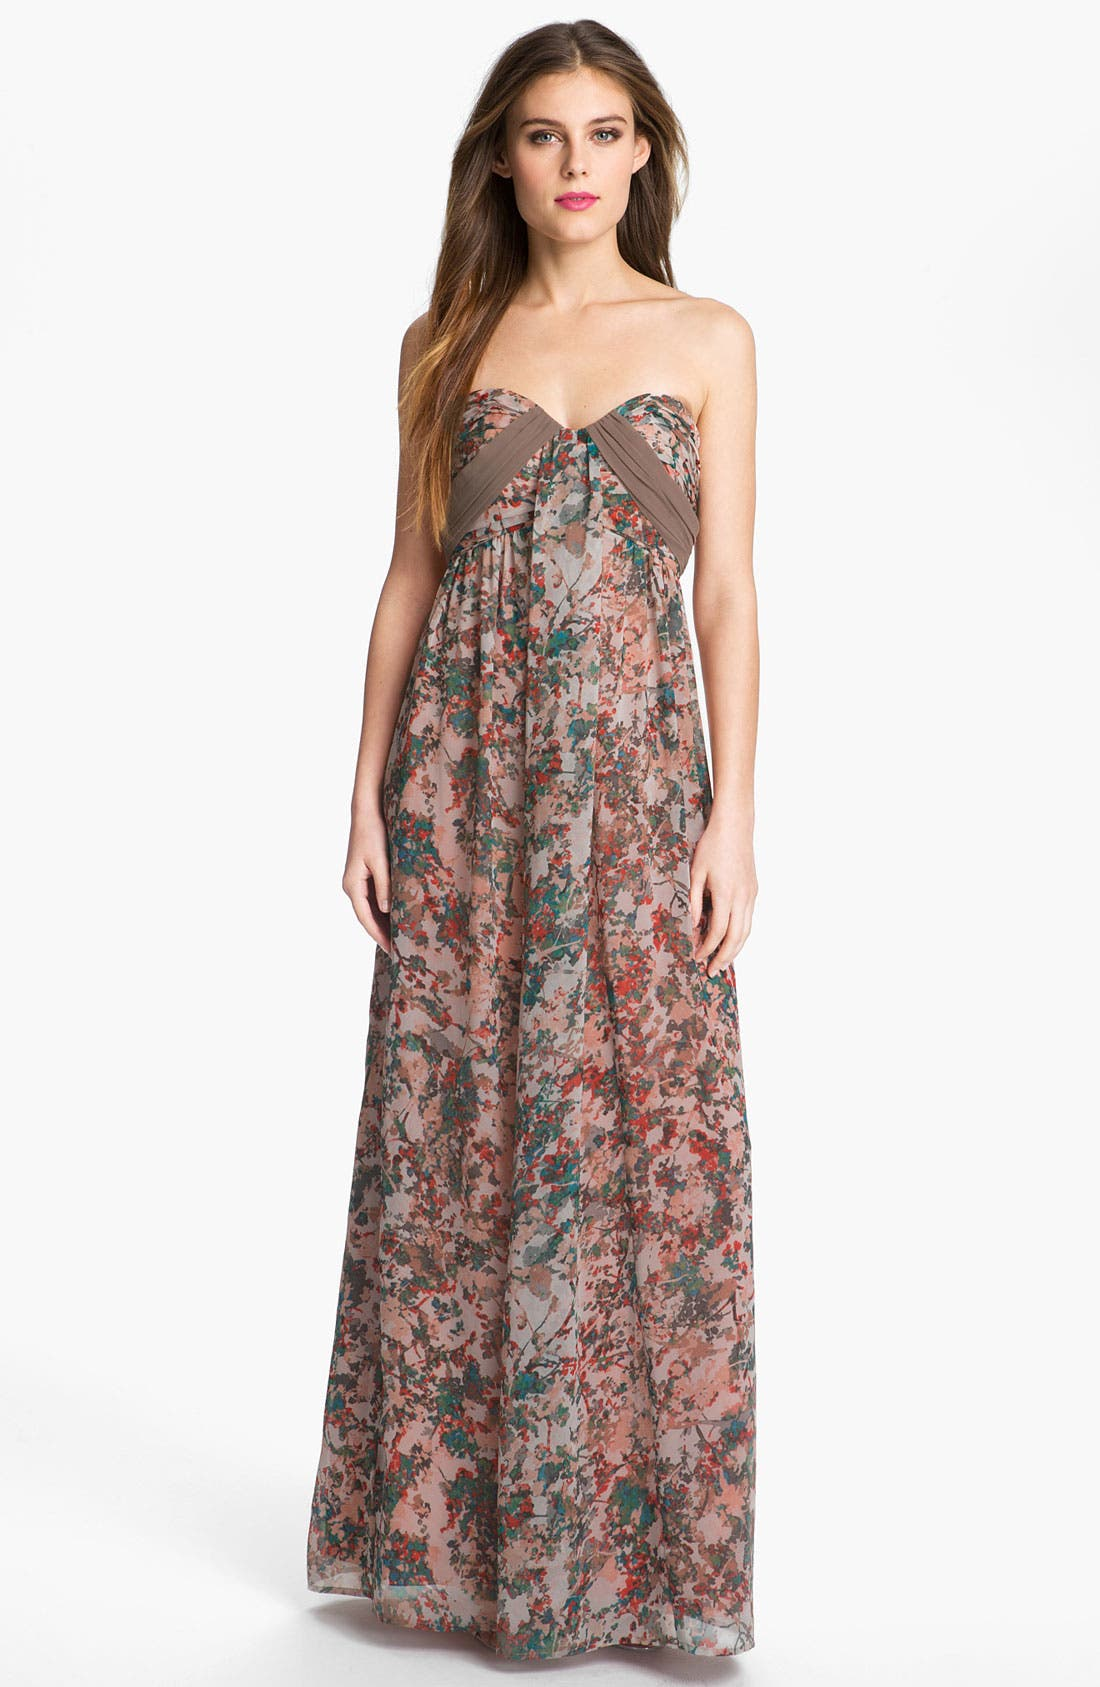 Alternate Image 1 Selected - Jessica Simpson 'Misty Rose' Print Maxi Dress